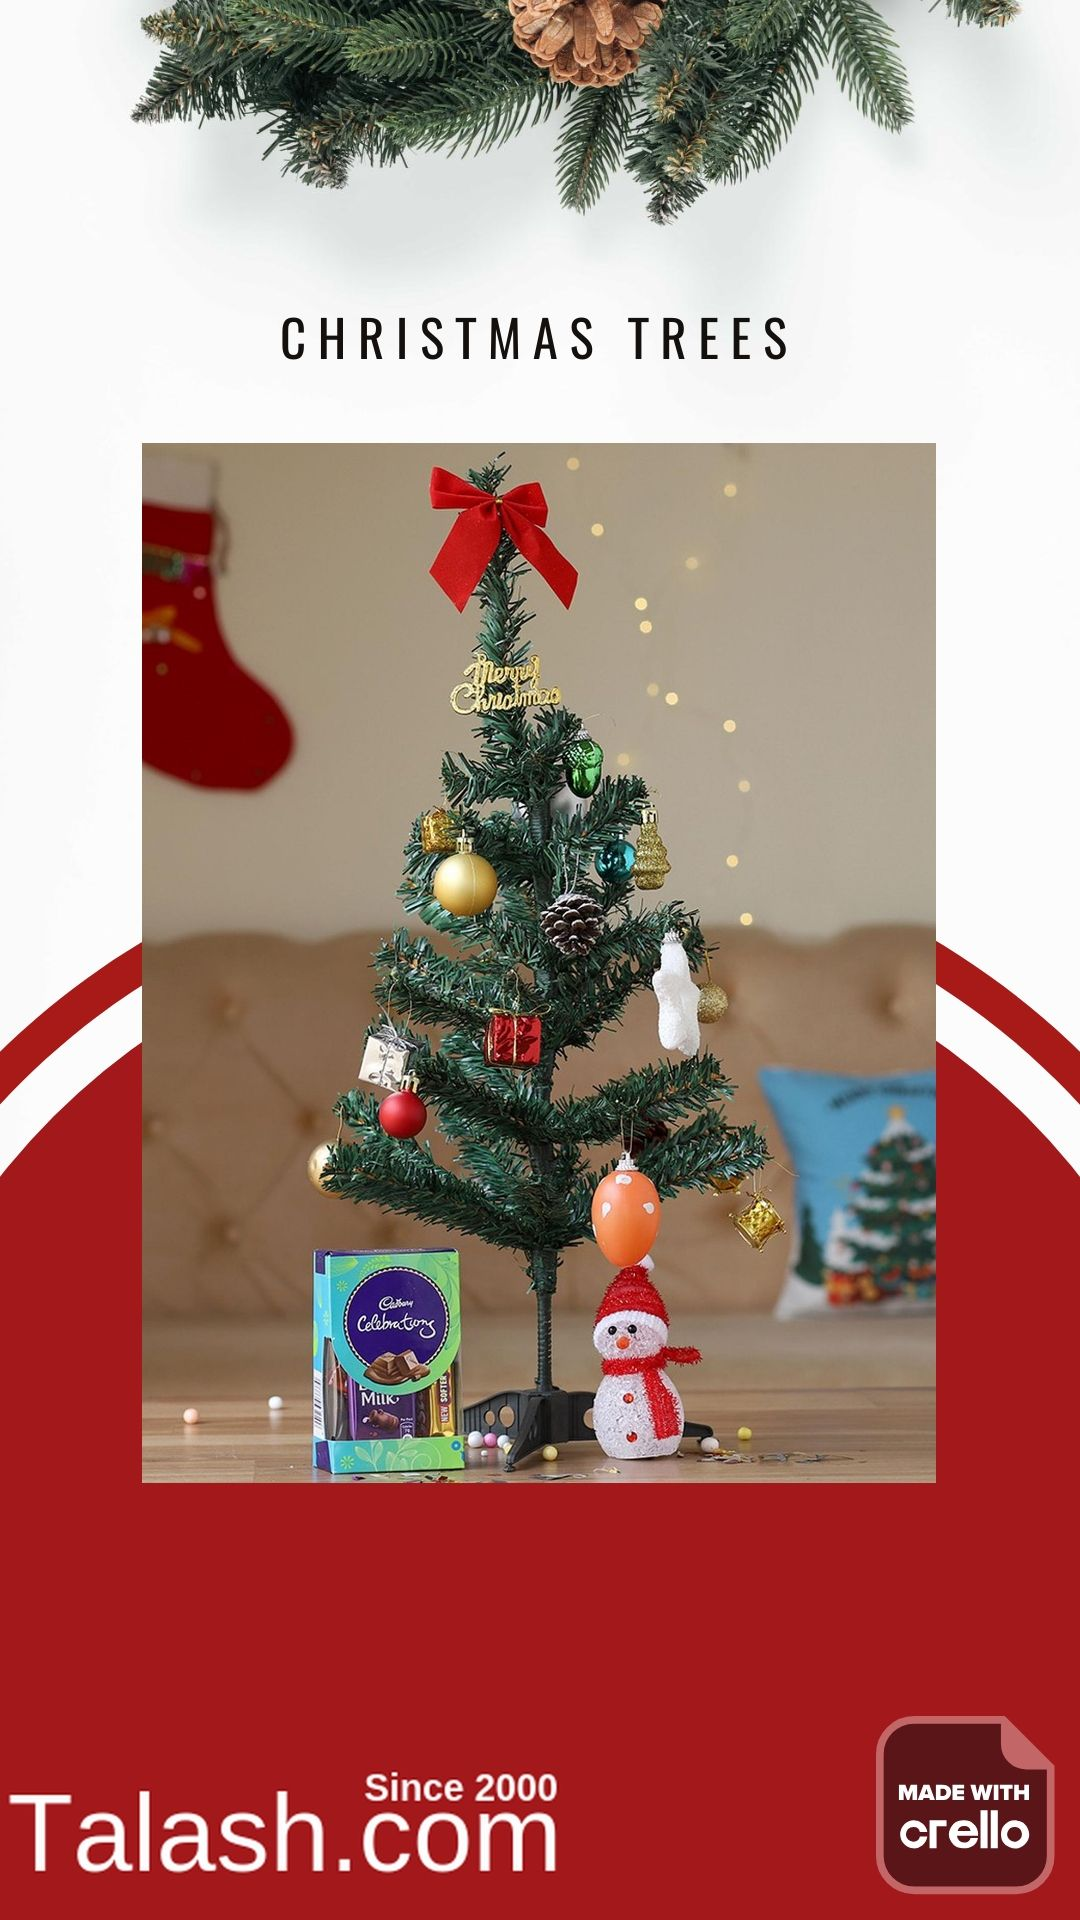 Christmas Trees With Talash Com In 2020 Christmas Real Christmas Tree Christmas Tree